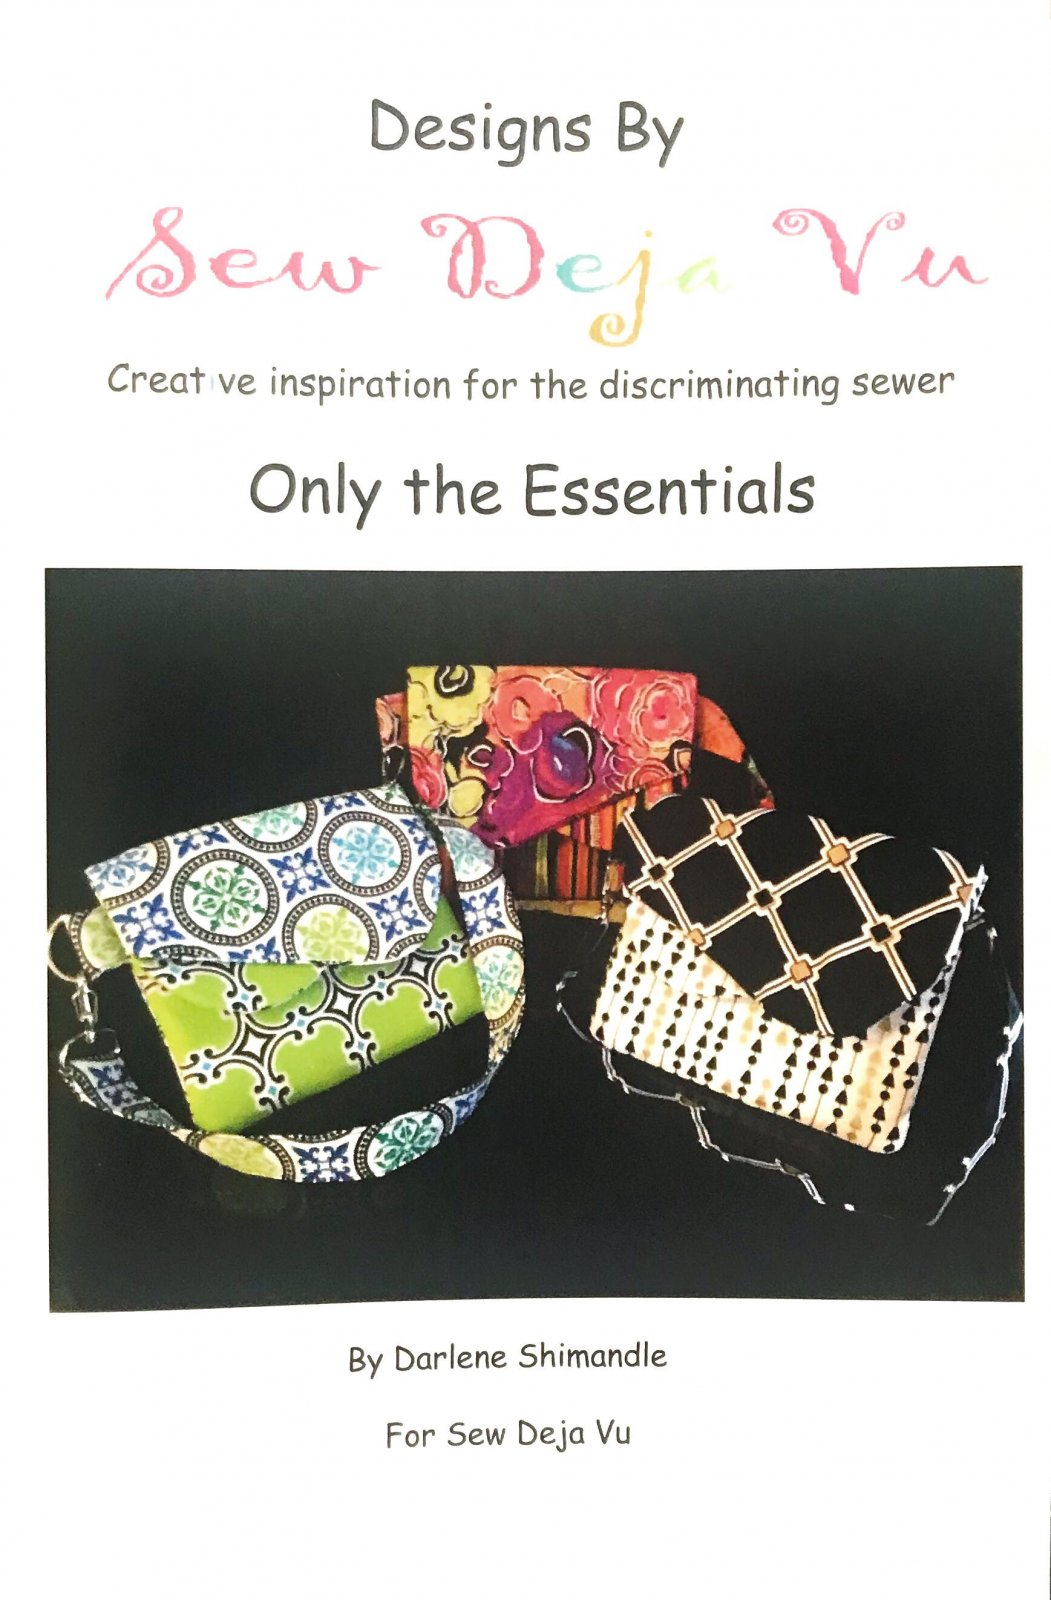 Only the Essentials Pattern by Sew Deja Vu